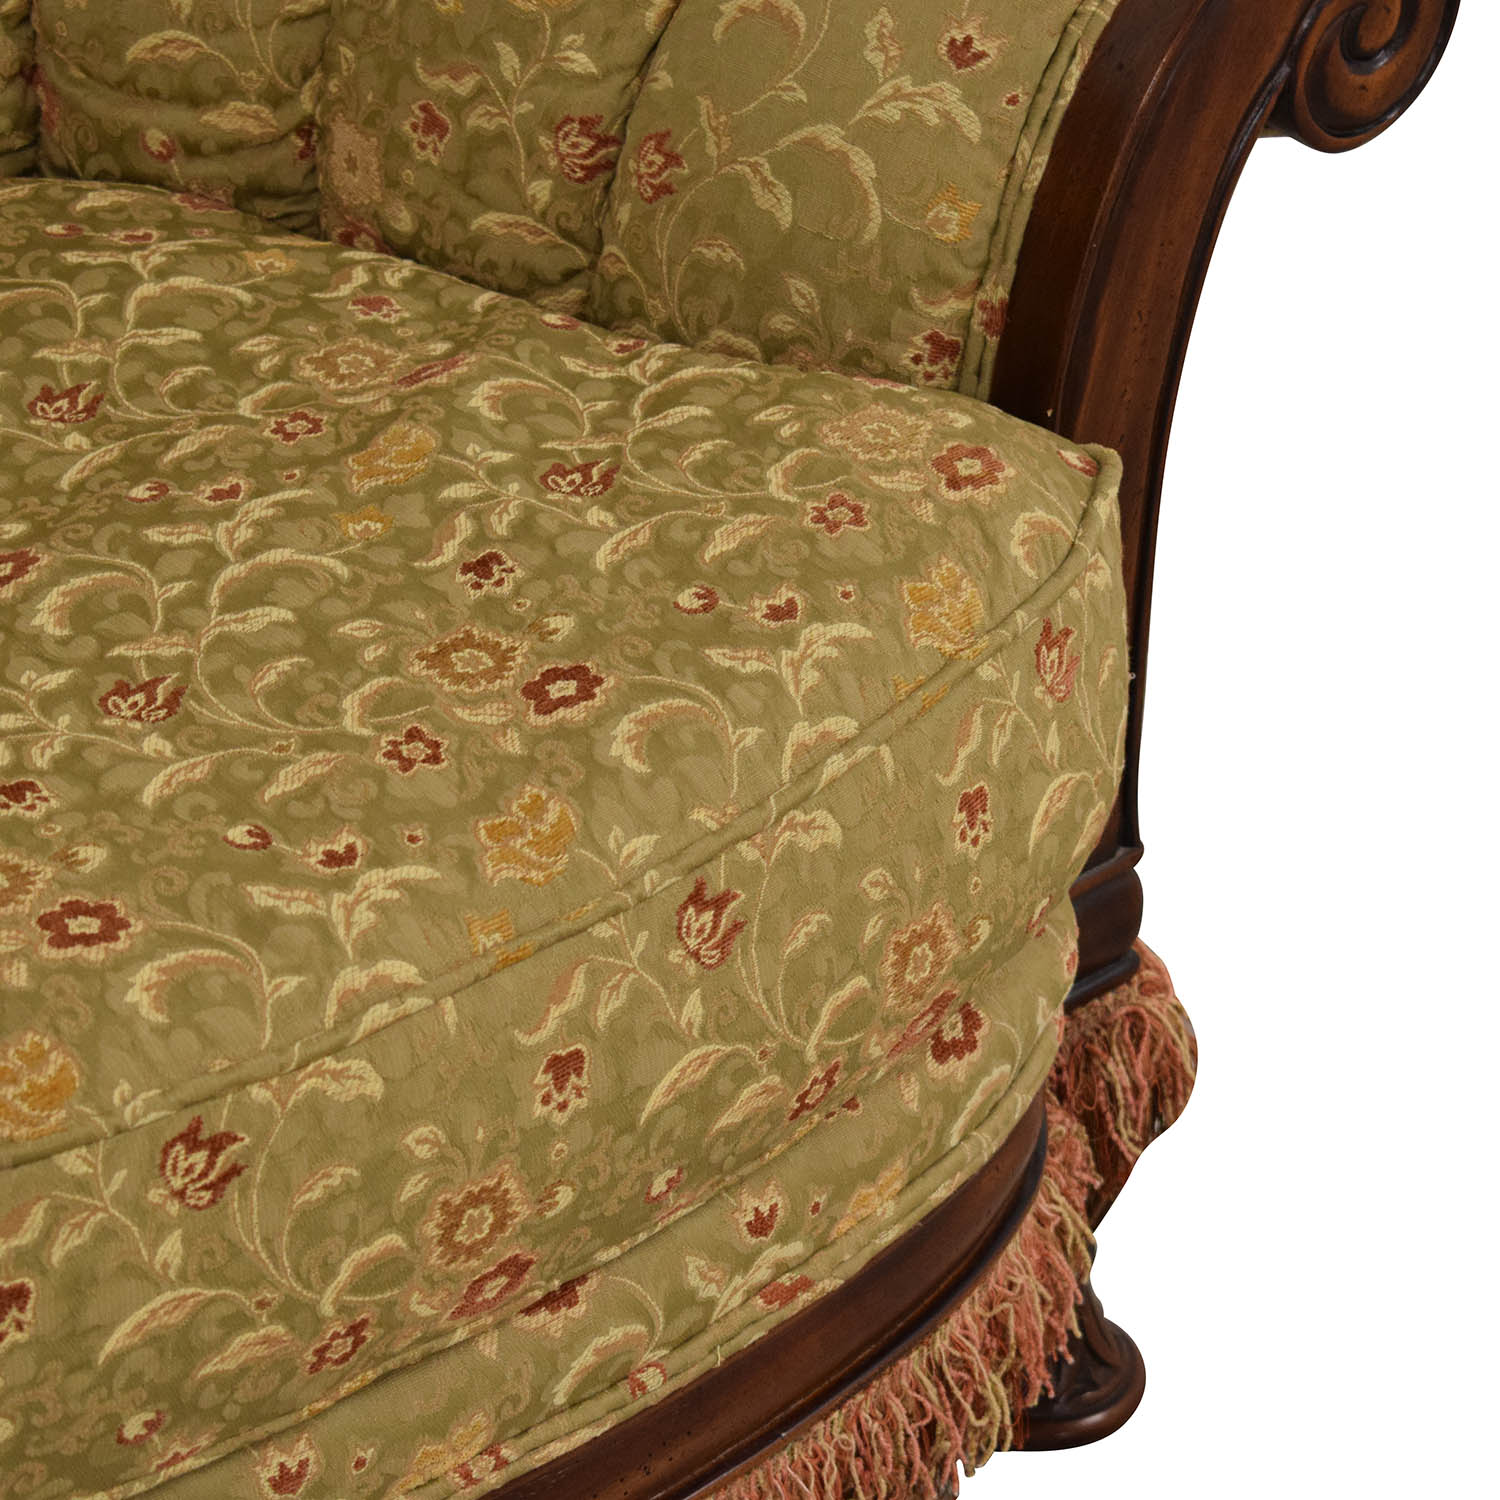 Vanguard Furniture Lauren Brooks Vanguard Furniture Scallop Back Rolled Arm Accent Chair Accent Chairs